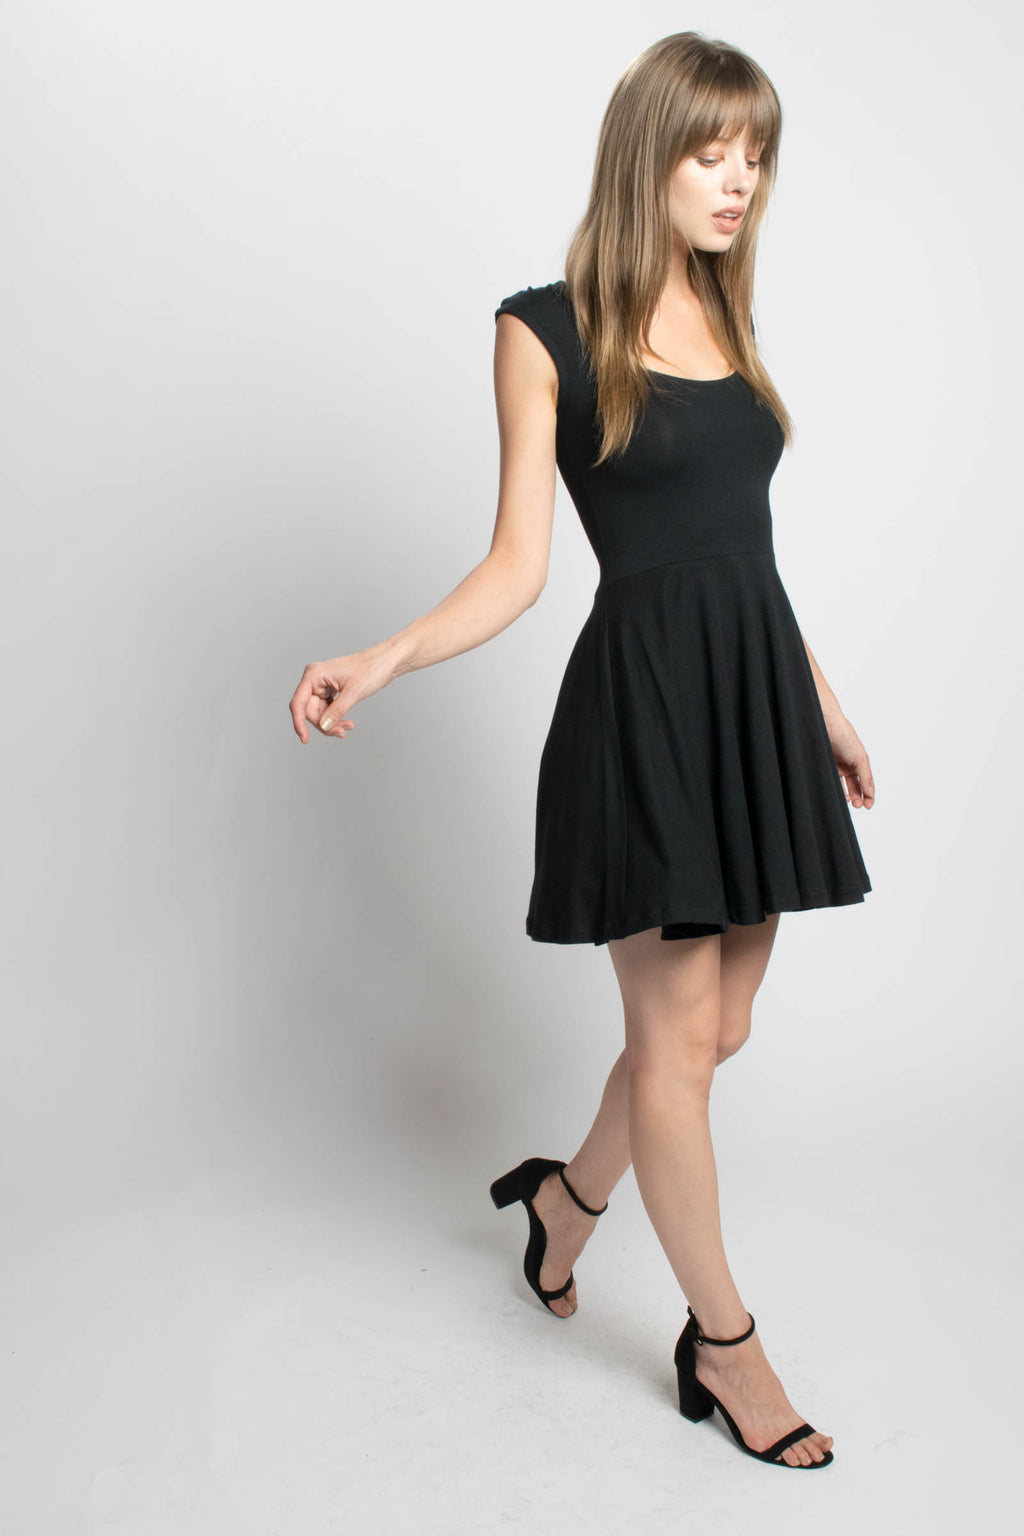 Devinto Fiona LBD Skater Dress Bead & Reel